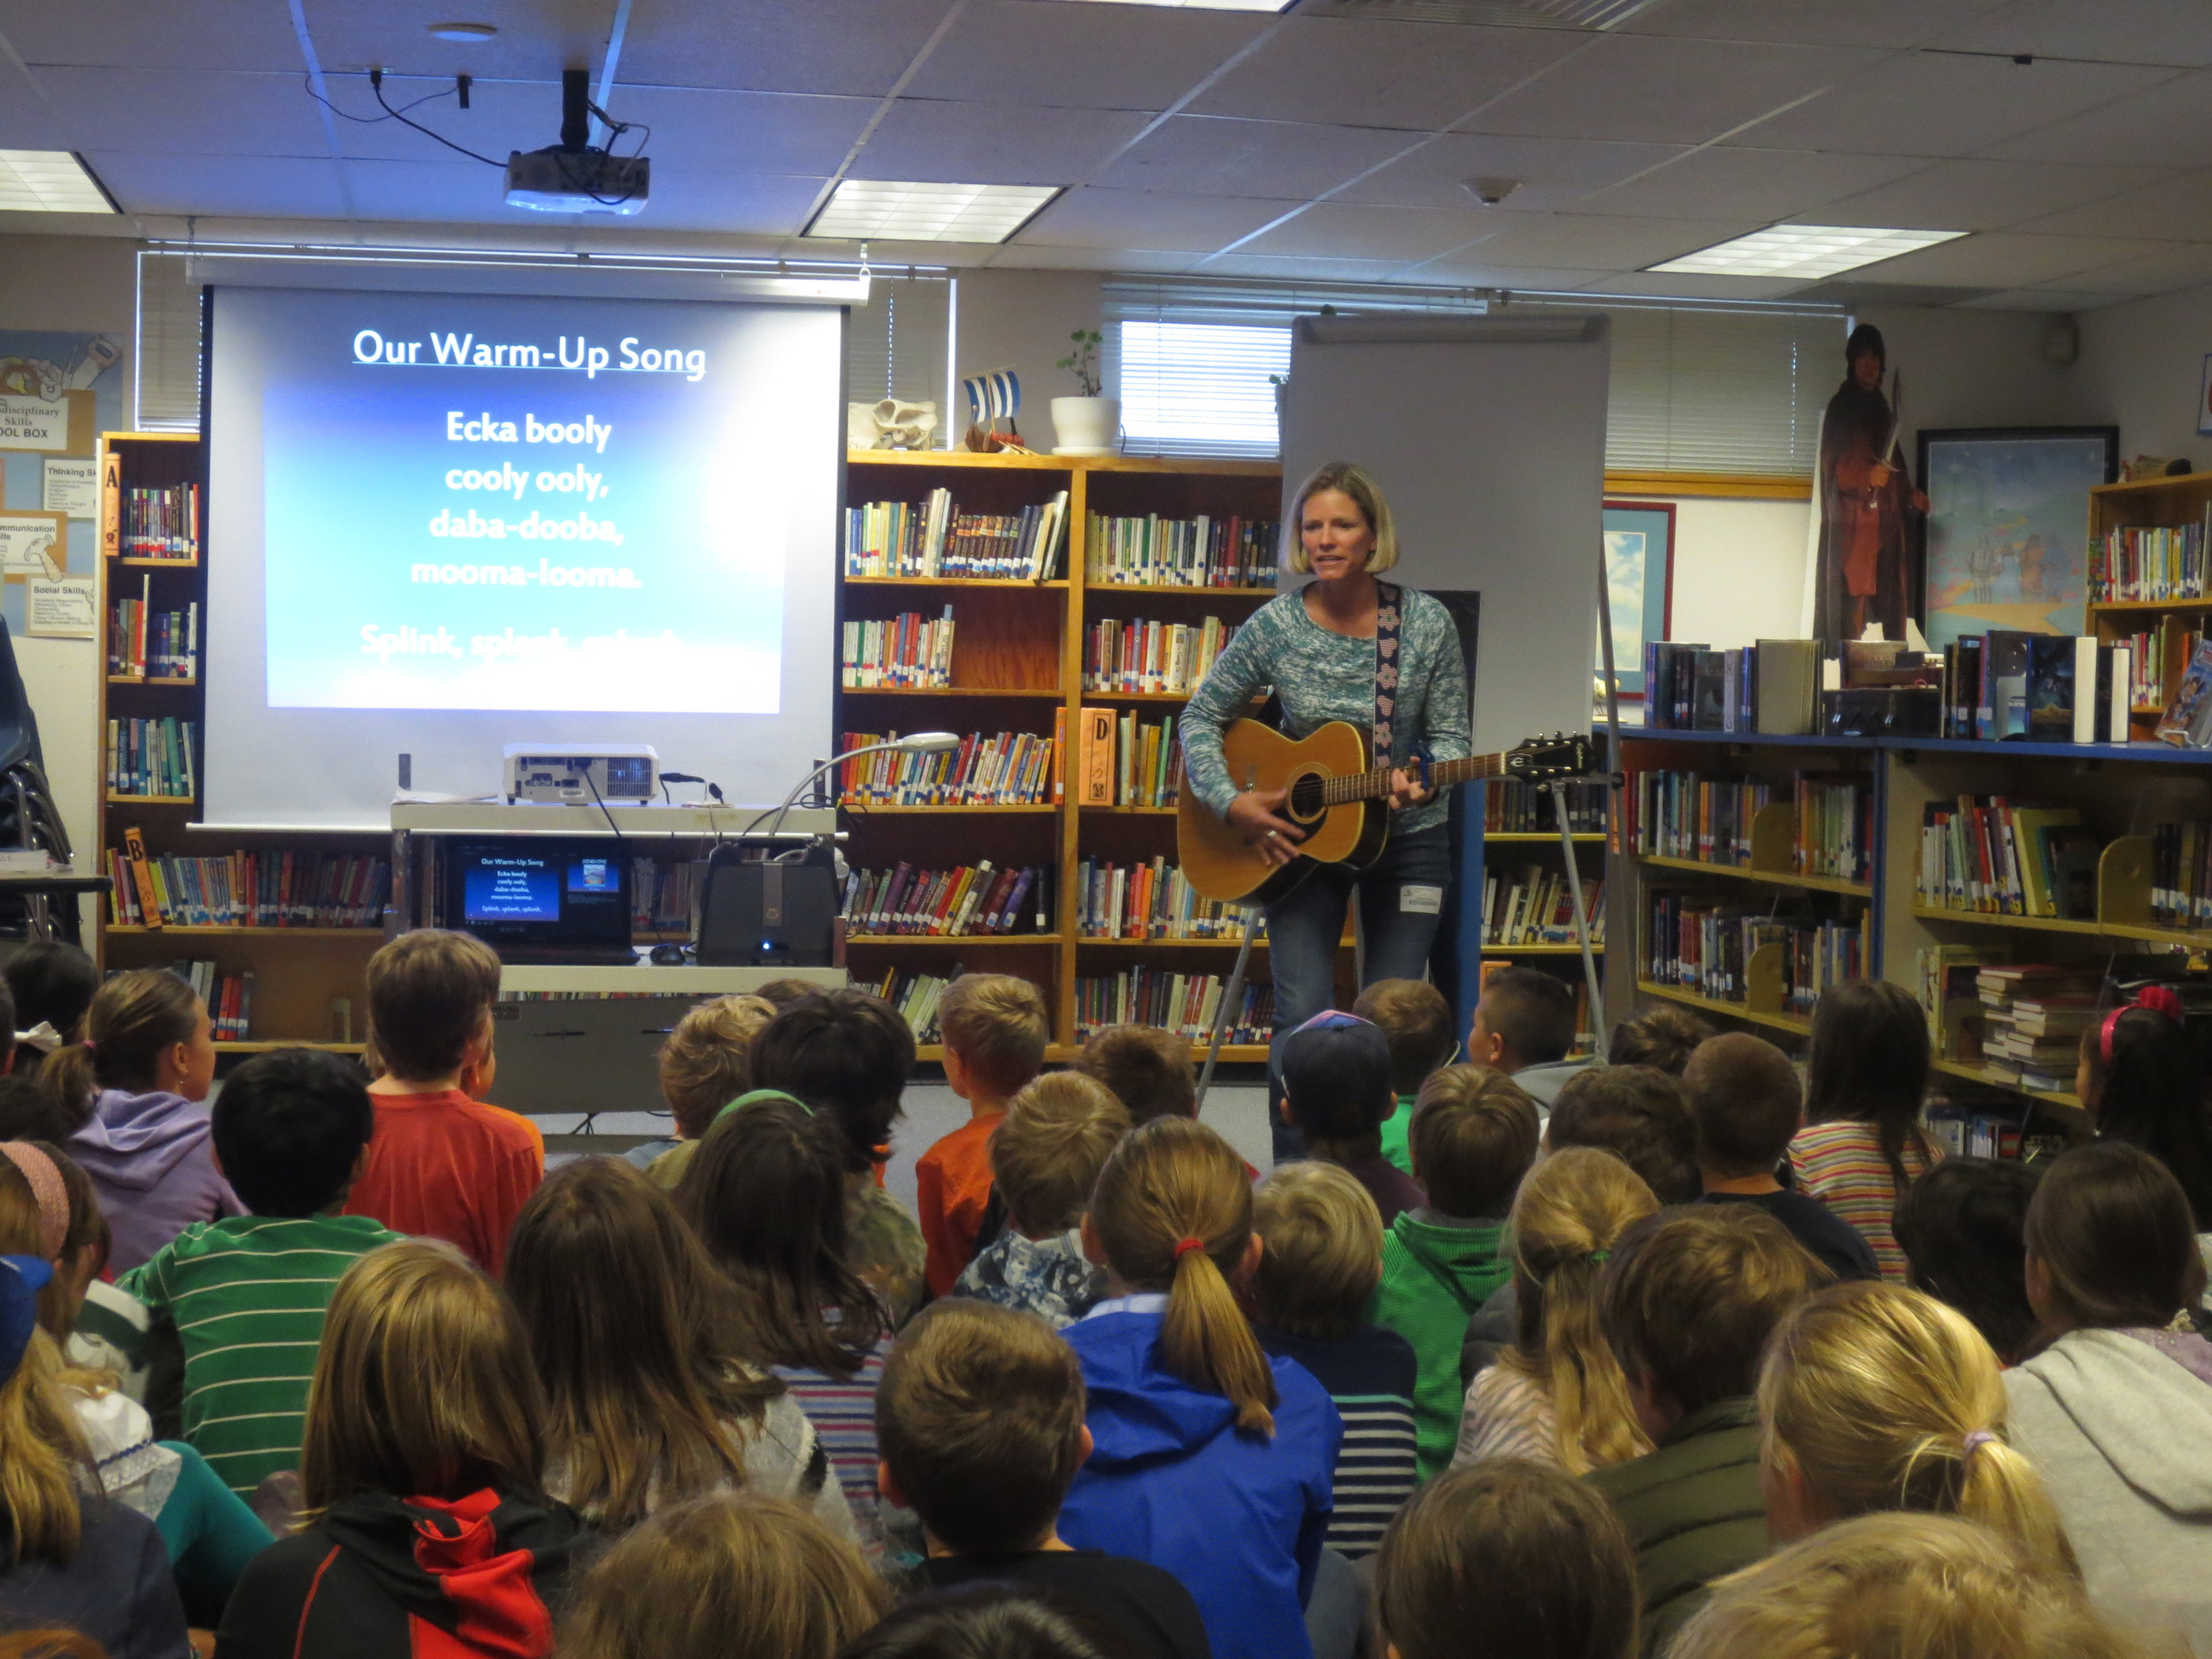 What a joy it was to share my passion for music with the students at Dunn Elementary today. They were thoughtful, curious, attentive and enthusiastic!  I shared some of what it takes to write and publish a book of songs and produce a CD like Campfire Songs for Modern Kids. We talked about the writing process and how making mistakes can be important to the creative process.  And of course we sang songs together too. Today's playlist:  Ecka Booly, Gimme Some More S'mores, Never Hug a Hibble, There's a House in the Middle of the Town.  I look forward to many more school visits like this one!